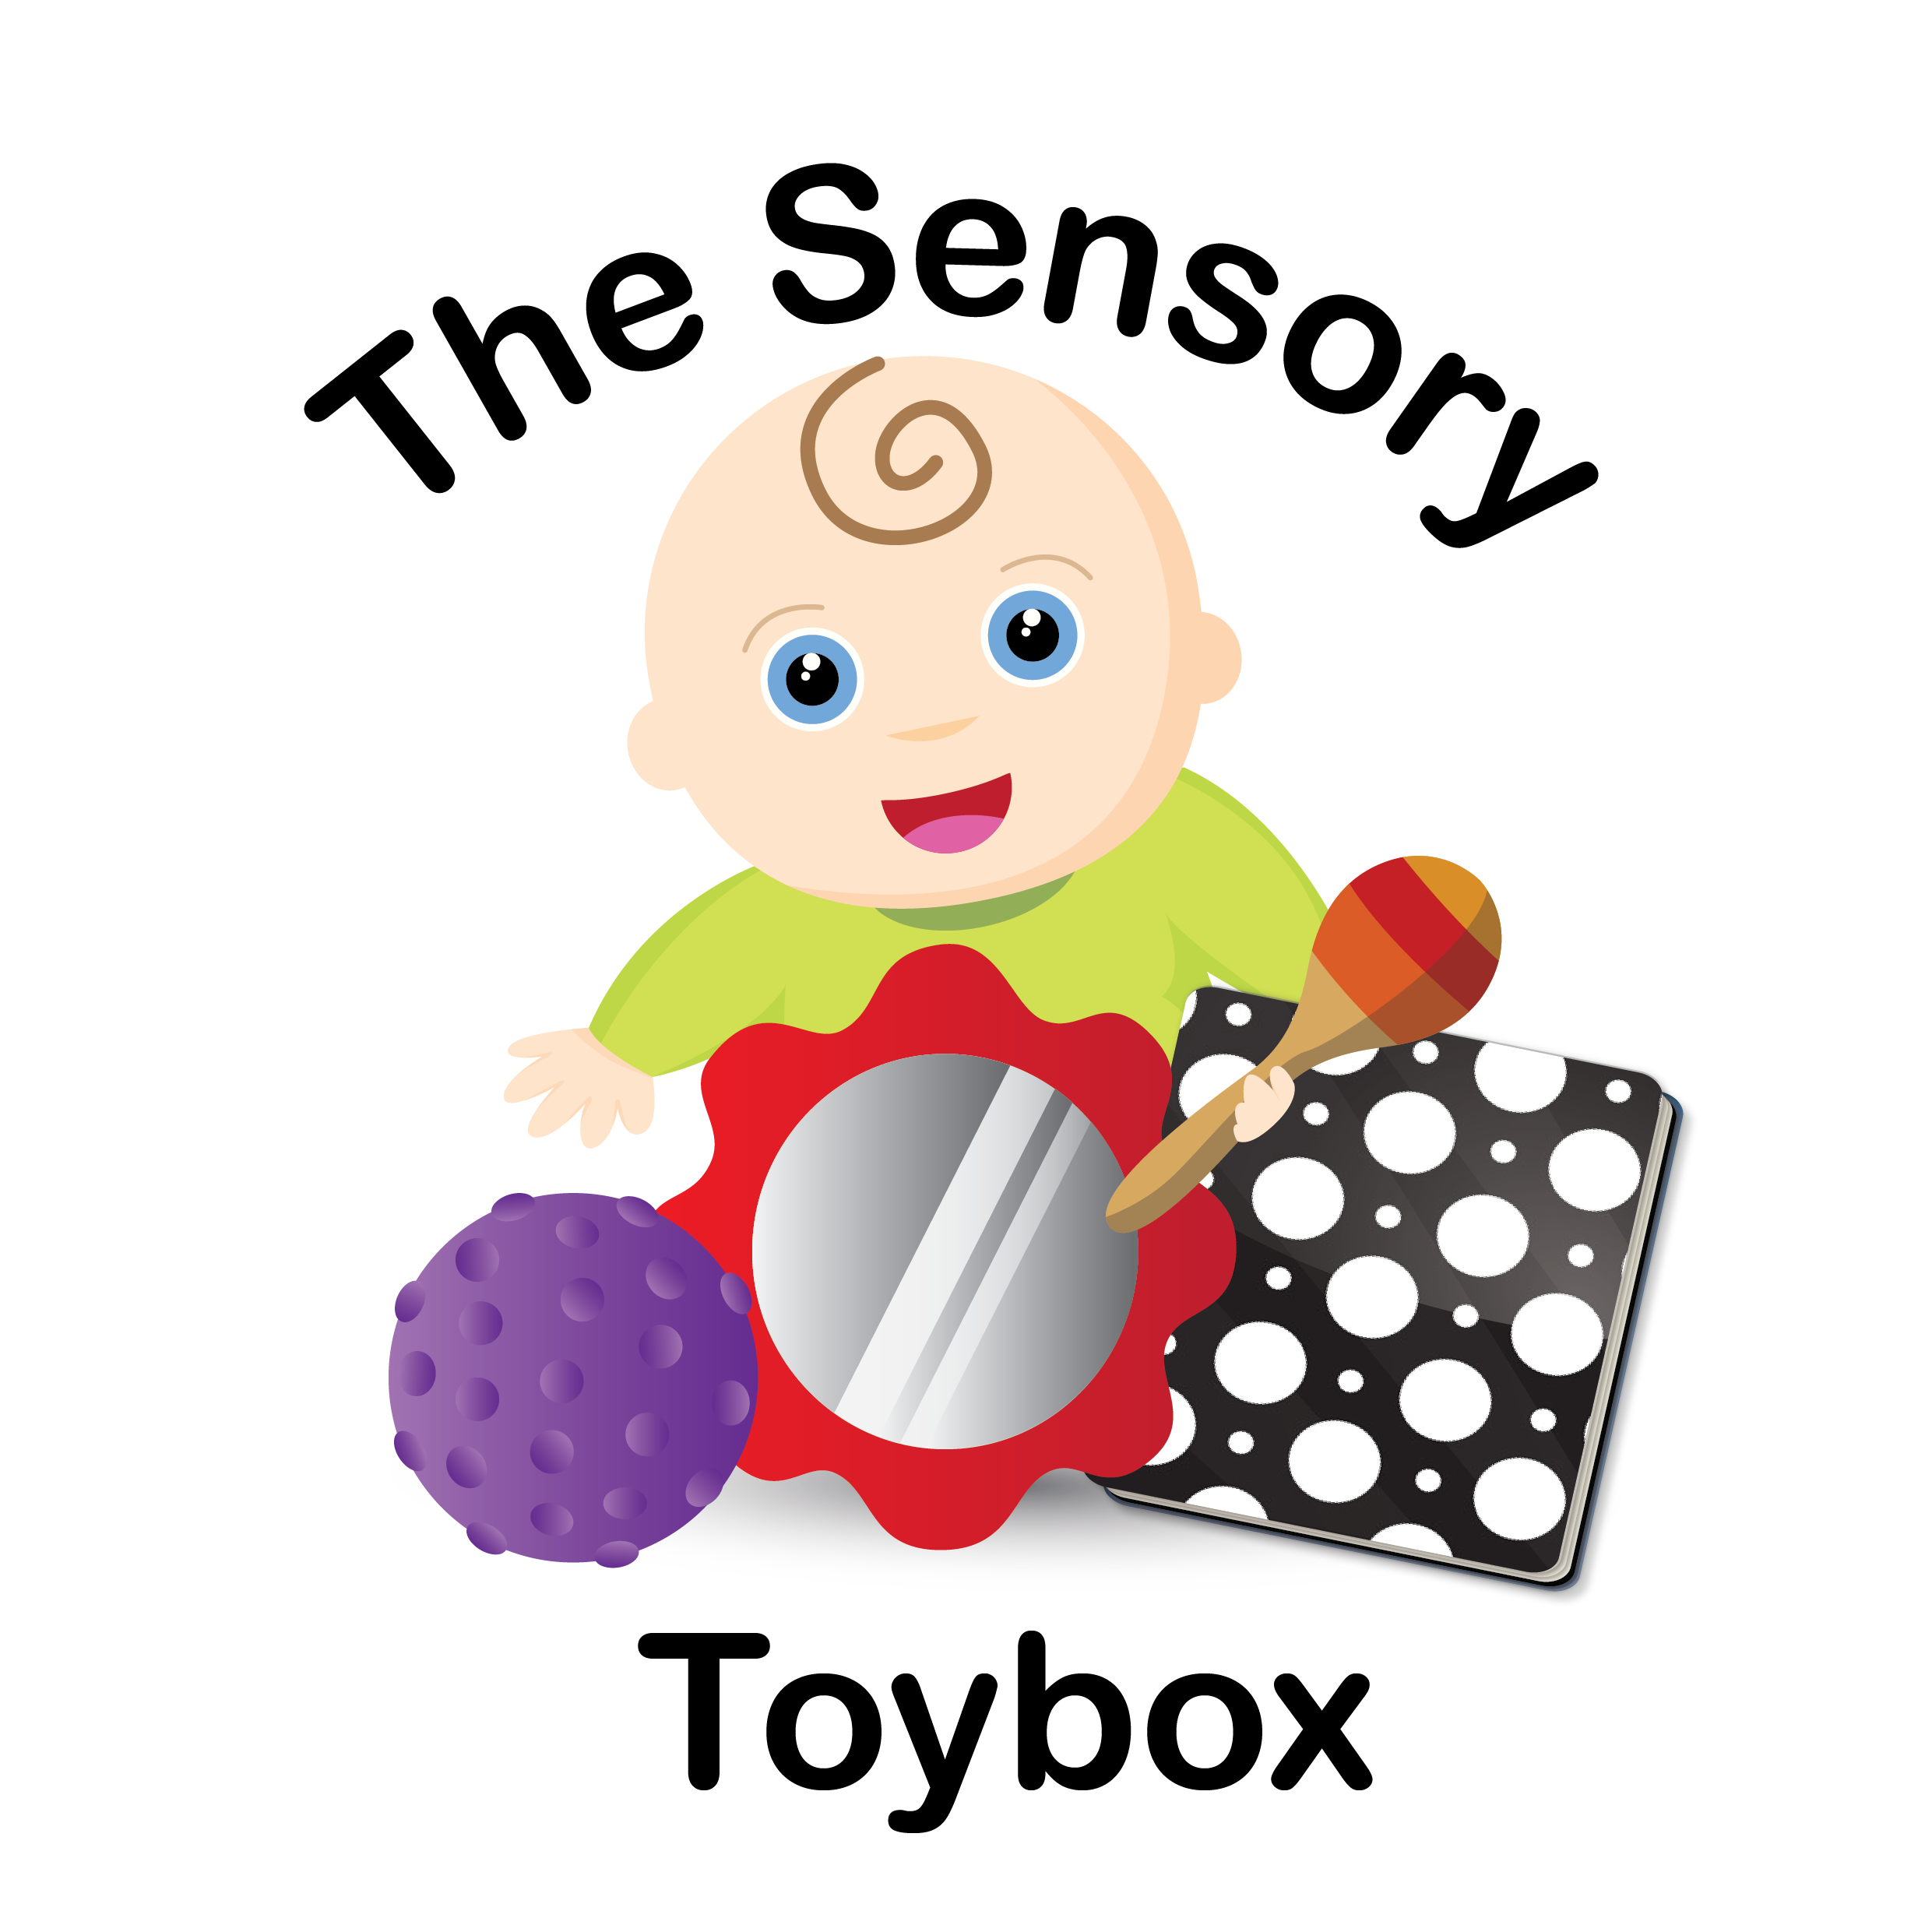 Marbles clipart toy. The sensory toybox facilitating